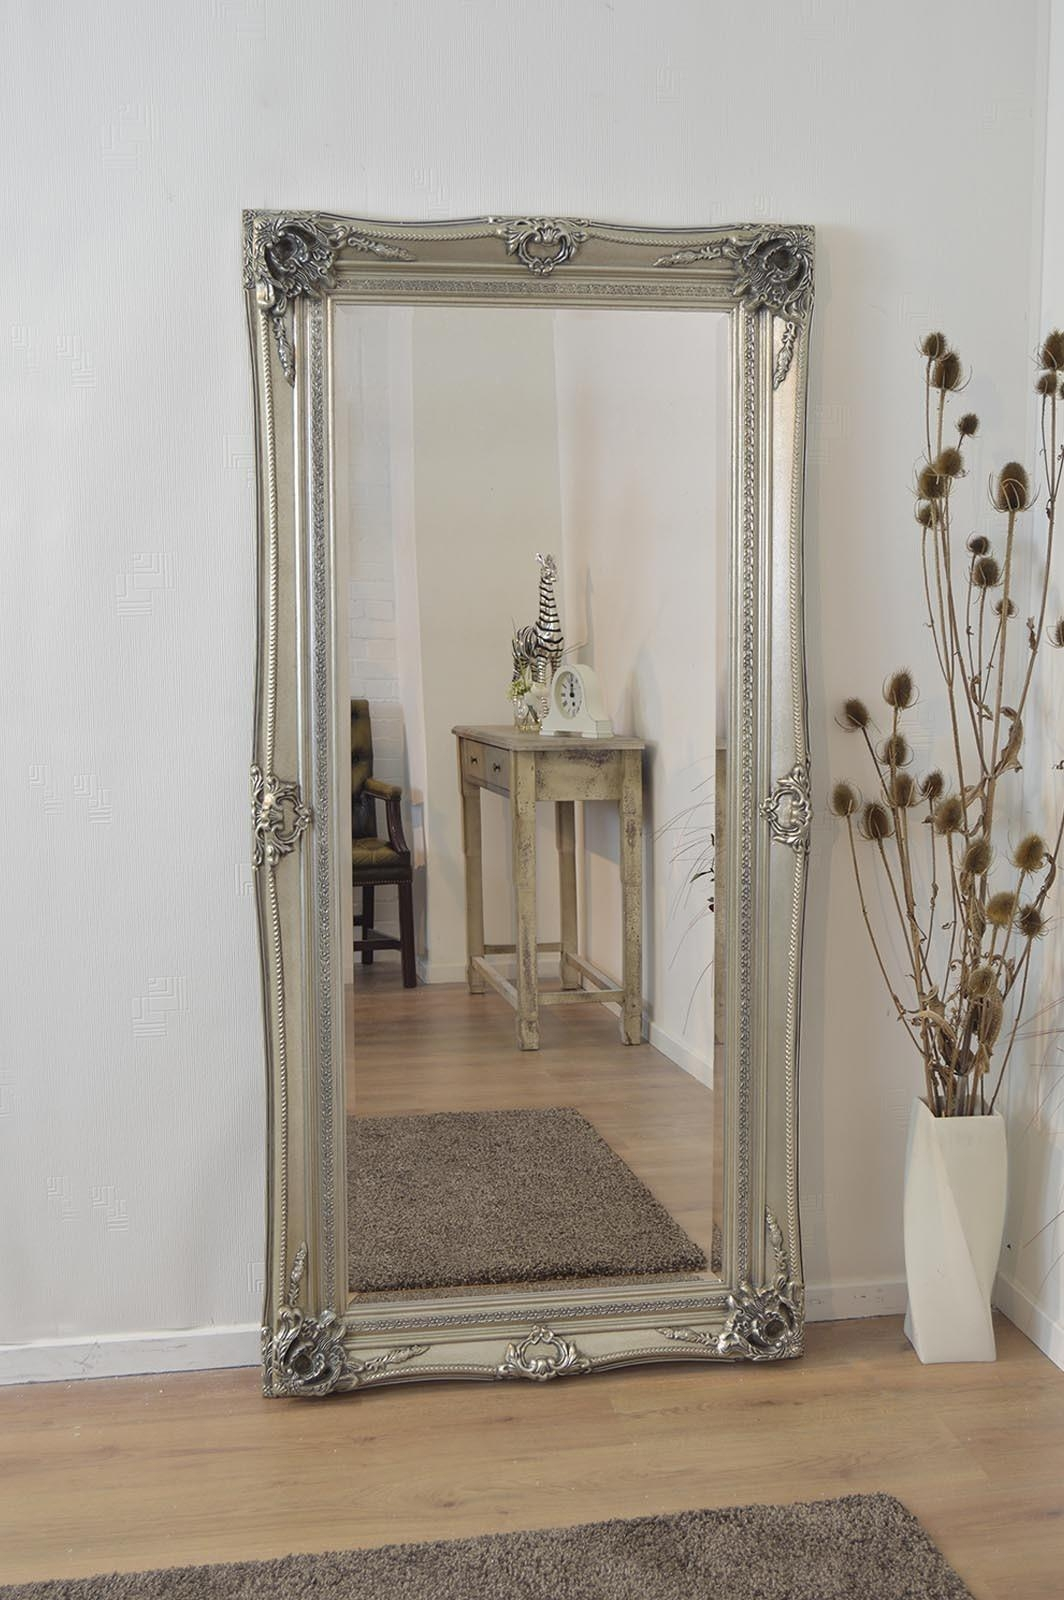 Large Antique Wall Mirror Ornate Frame Antique Ornate Wall Mirrors Regarding Antique Long Mirror (Image 18 of 20)